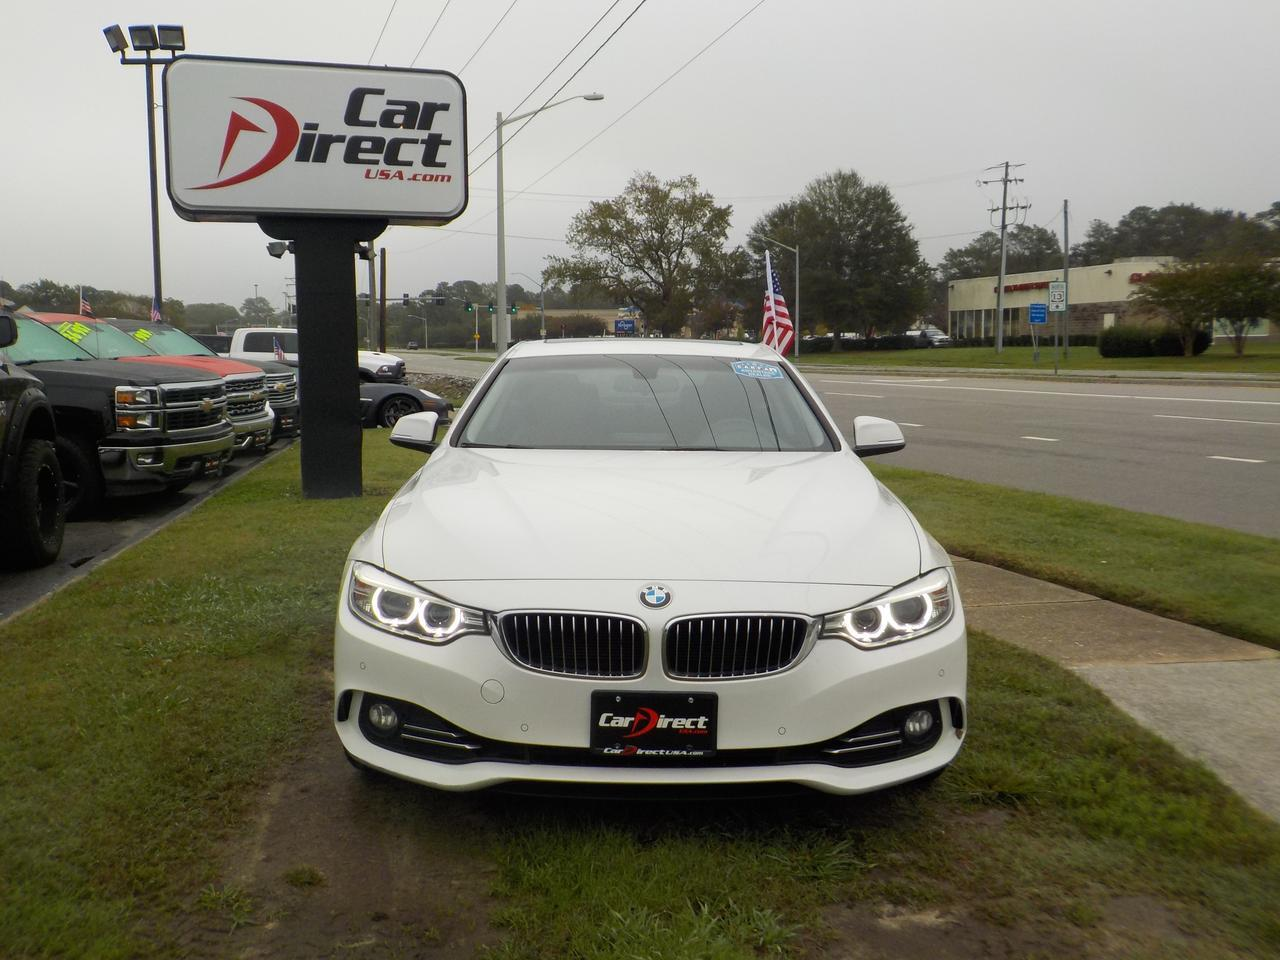 2014 BMW 428i 2DR COUPE, LEATHER, BACKUP CAMERA, BLUETOOTH, KEYLESS START, SUNROOF, ONLY 57K MILES! Virginia Beach VA